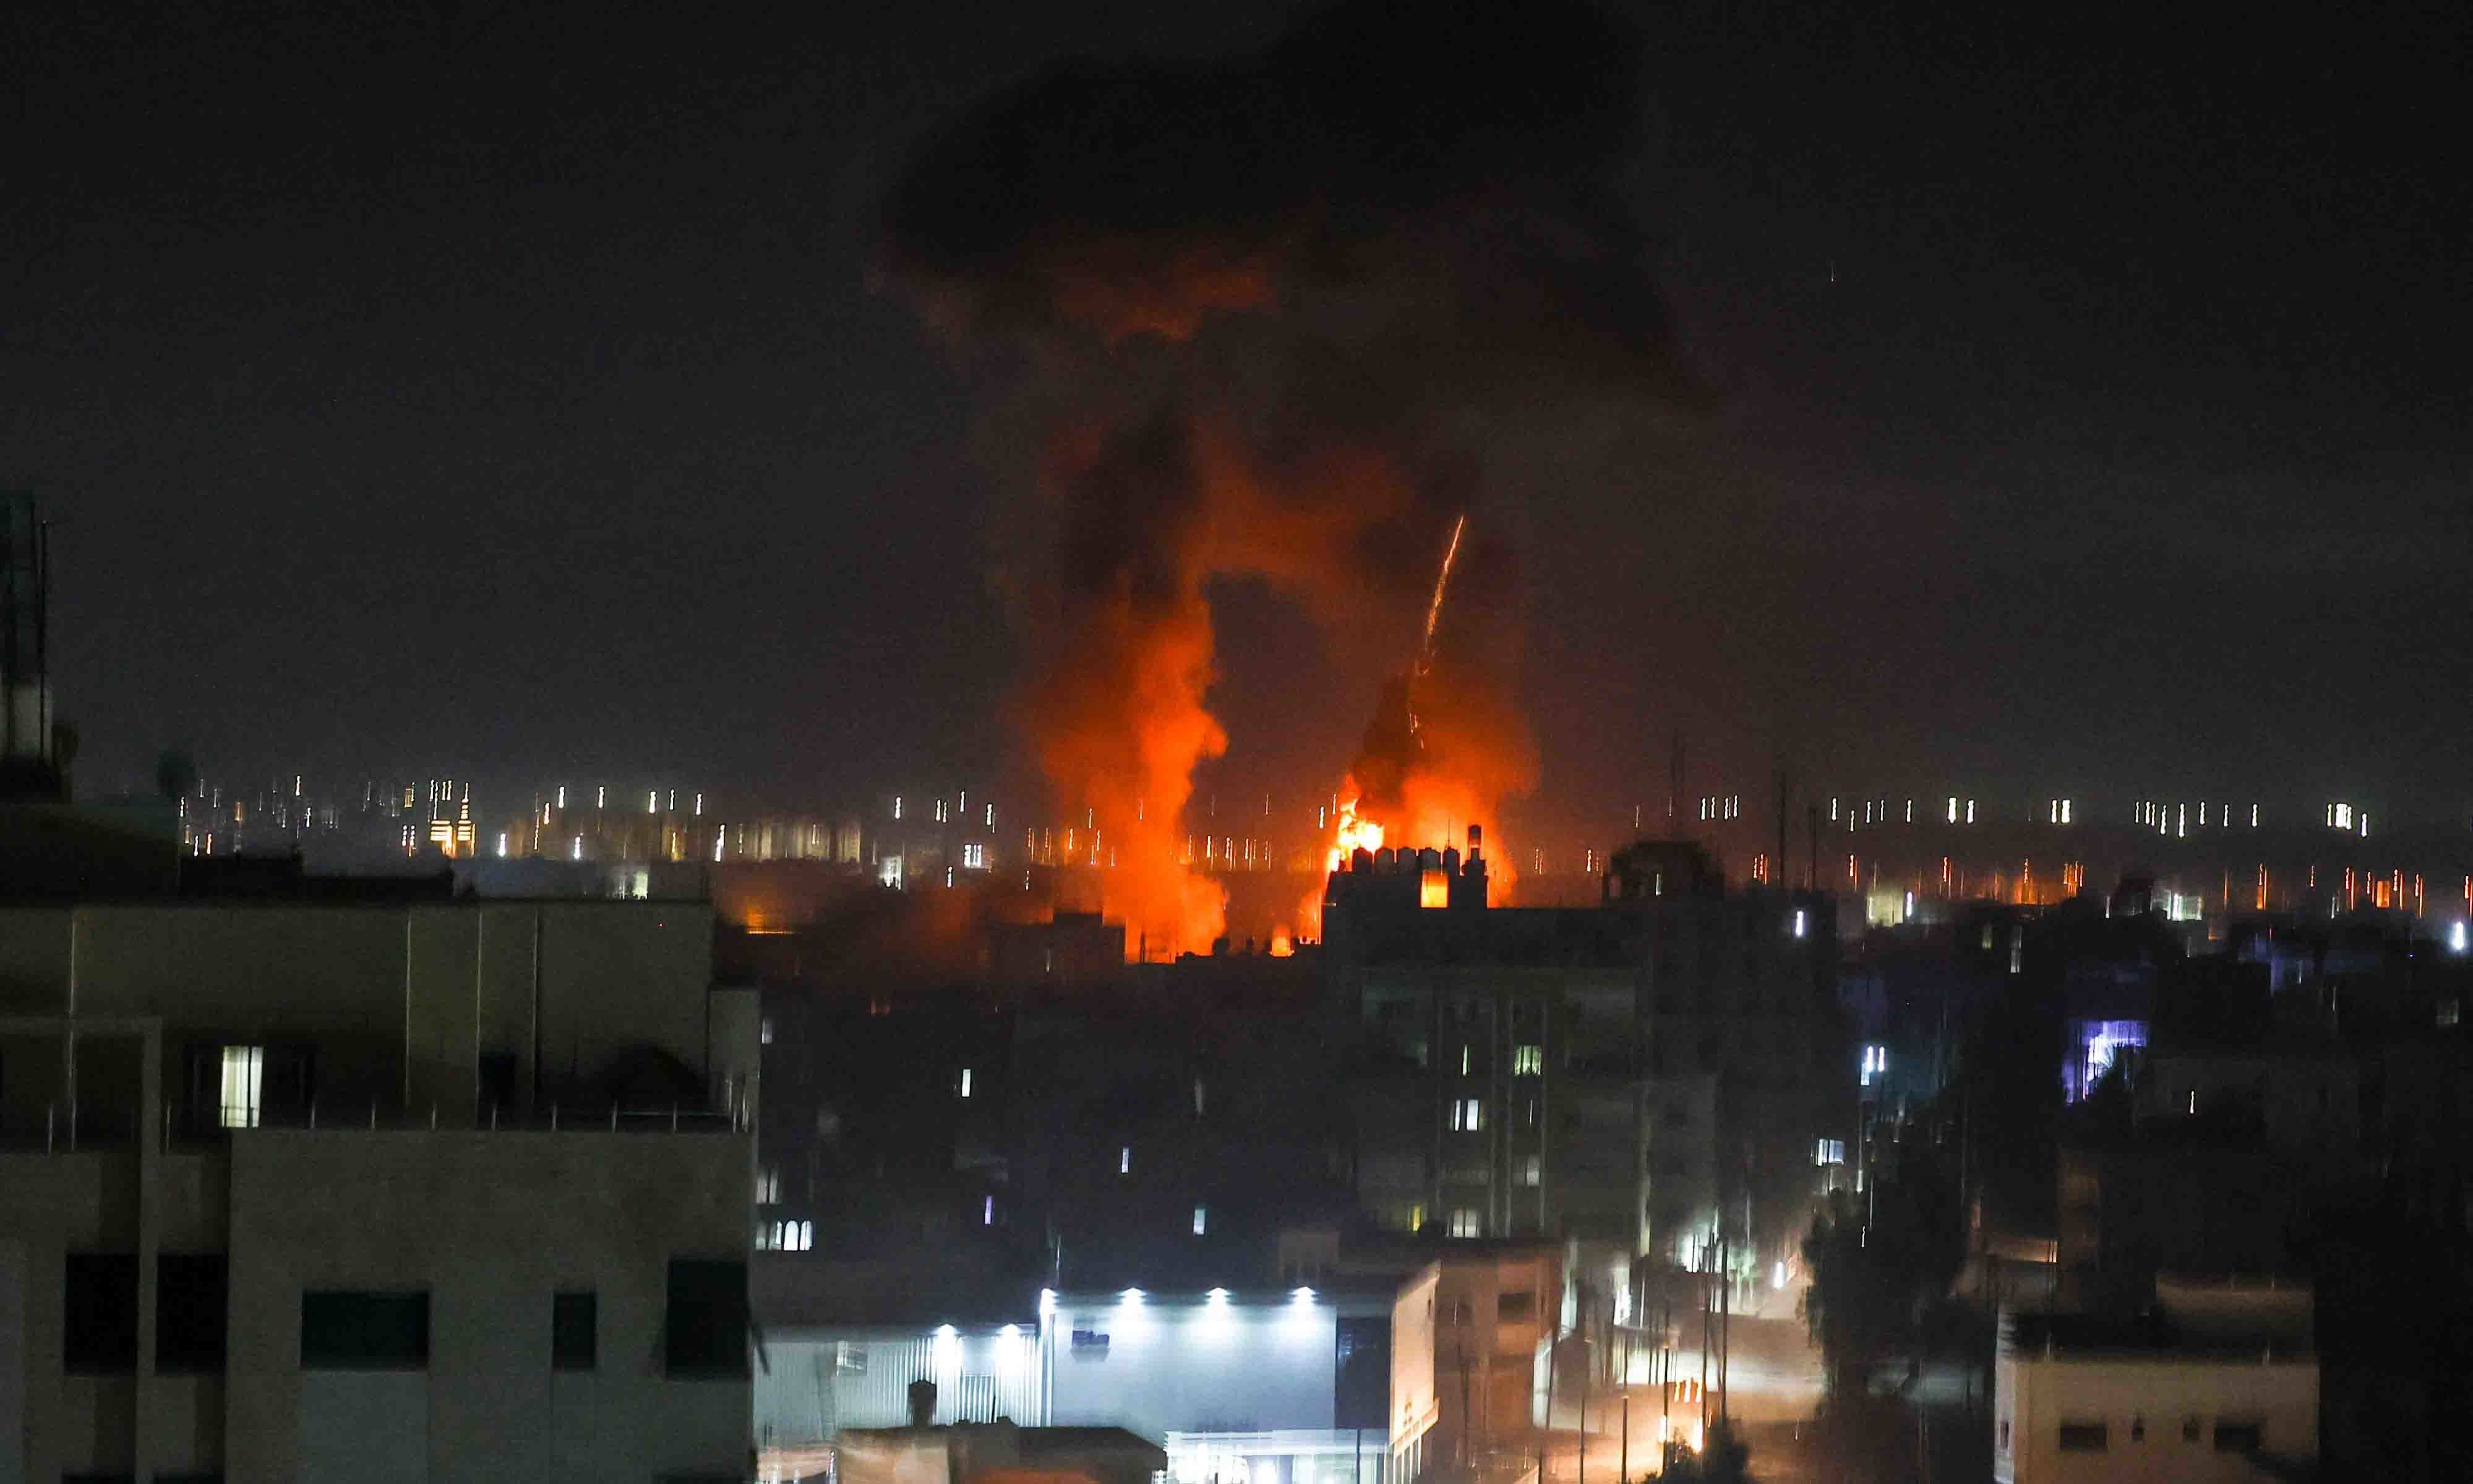 Explosions light-up the night sky above buildings in Gaza City as Israeli forces shell the Palestinian enclave, early on June 16. — AFP